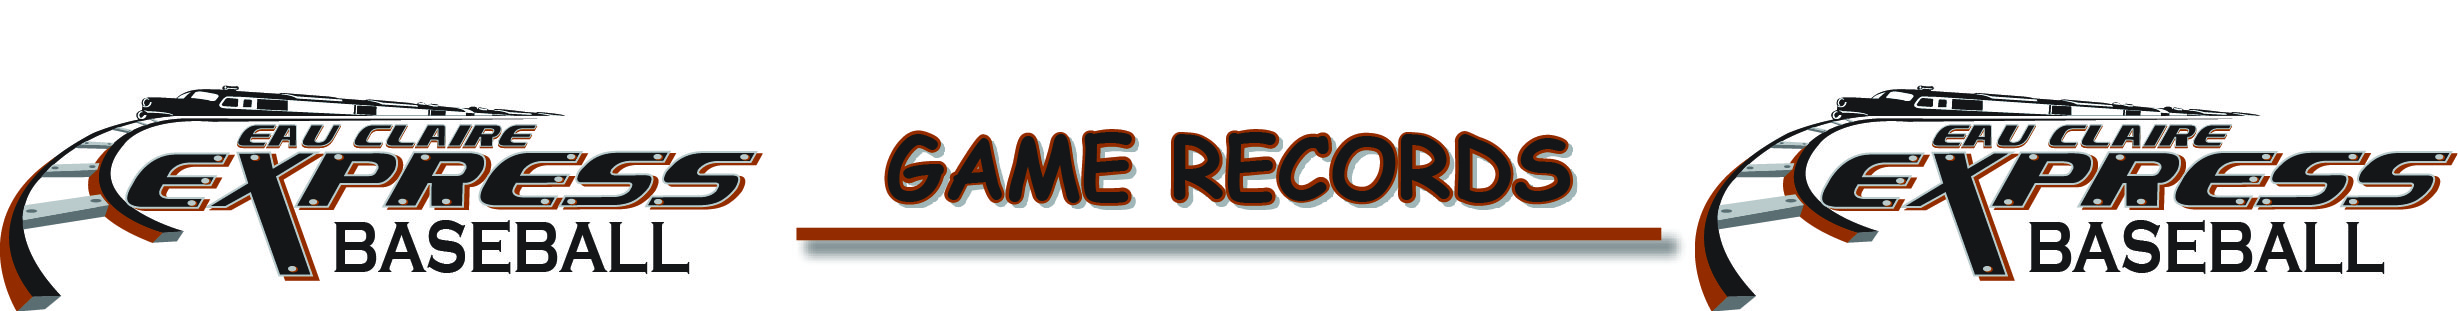 GAMERECORDS